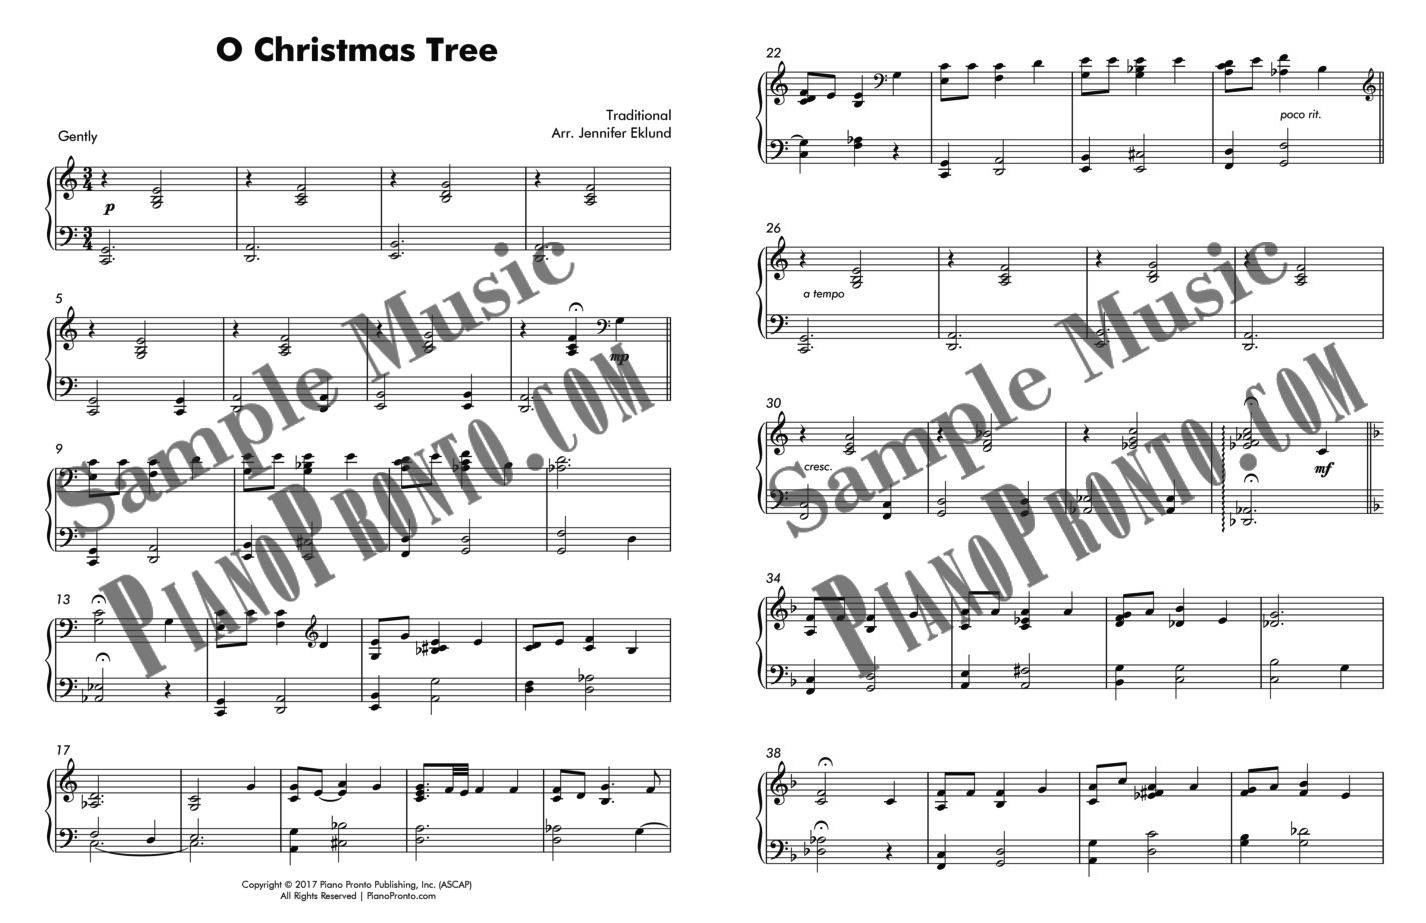 O Christmas Tree - Jazzy Holiday Solo | Sheet Music | Piano Pronto ...